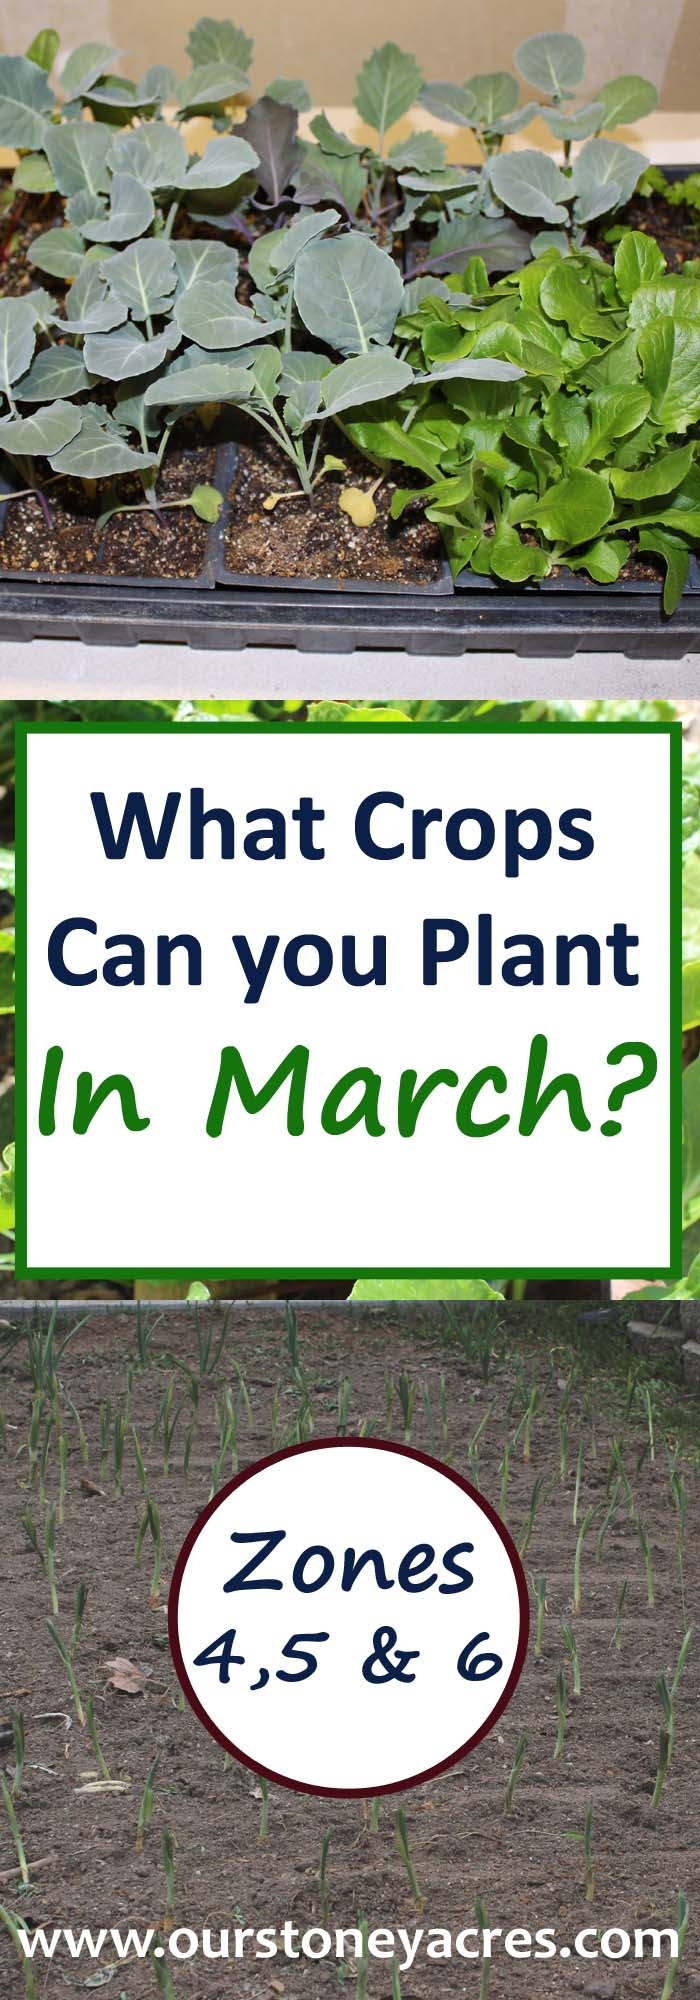 March Planting Guide Zones 4-6